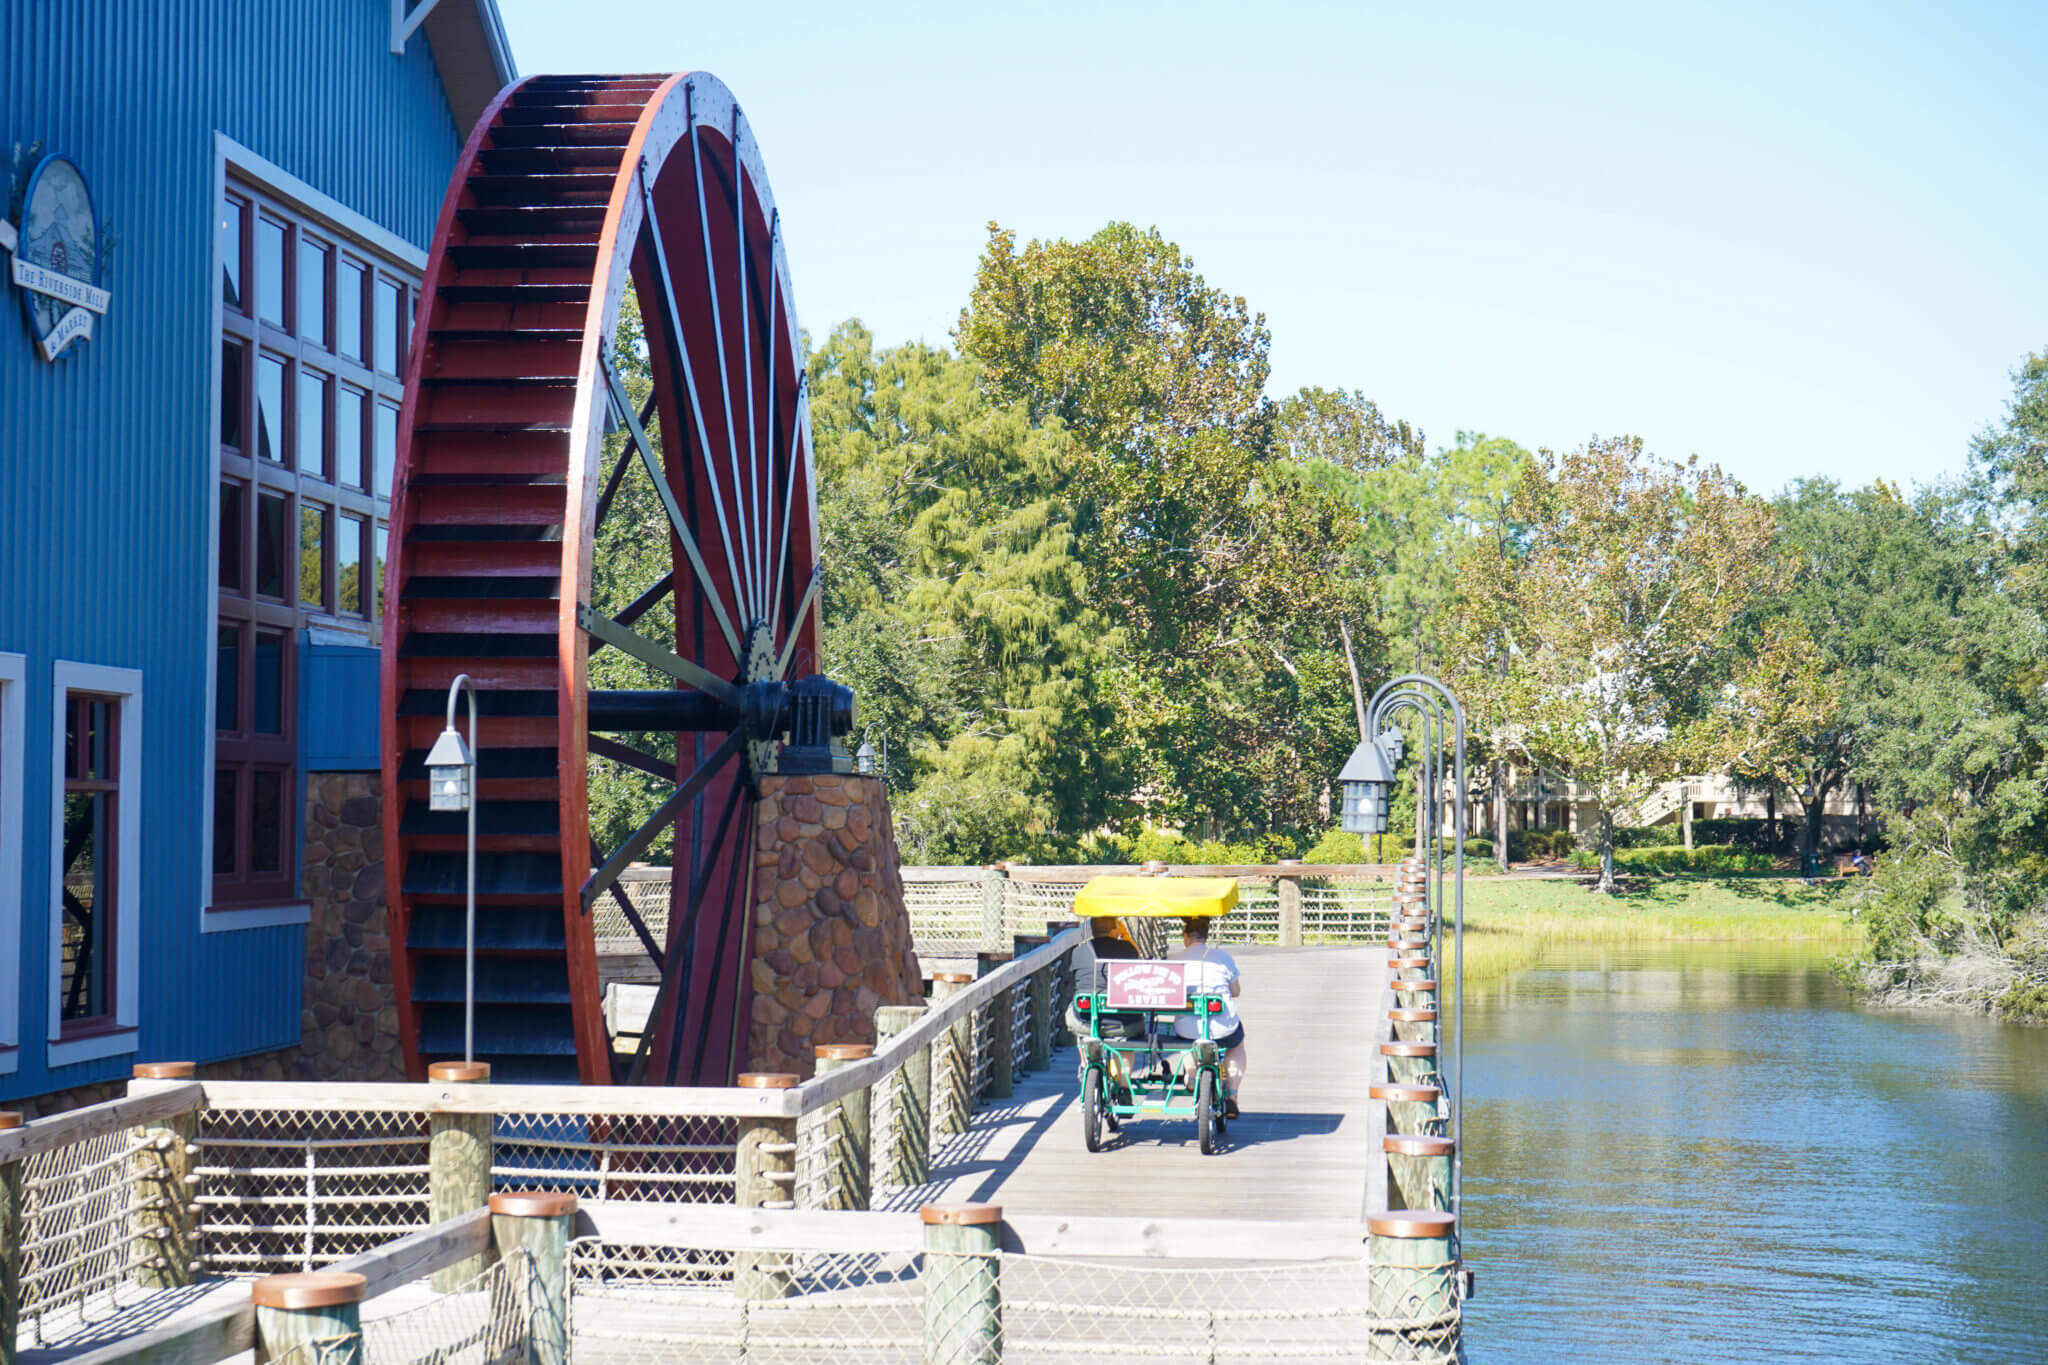 Port Orleans Riverside bridge and watermill wheel with a surrey bike